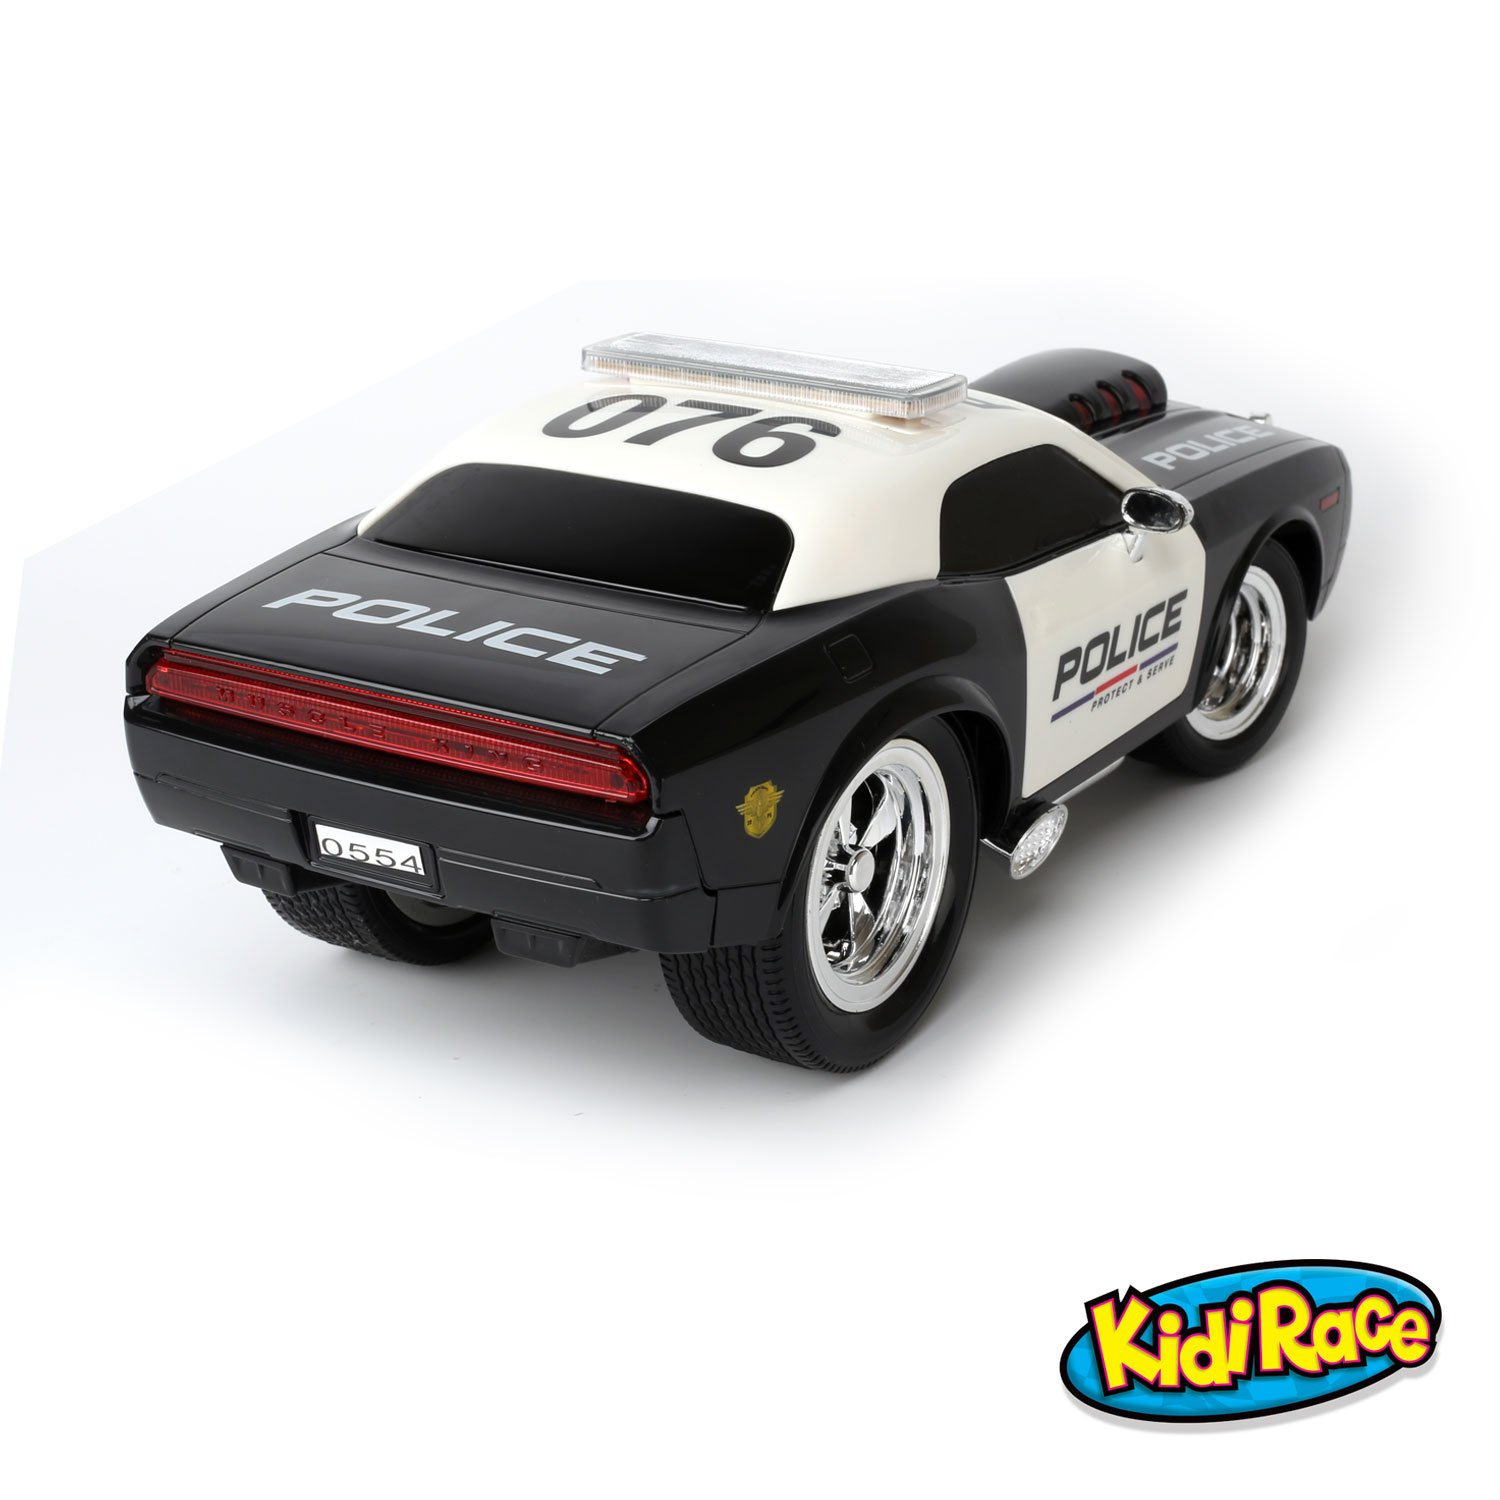 kidirace rc remote control police car for kids durable